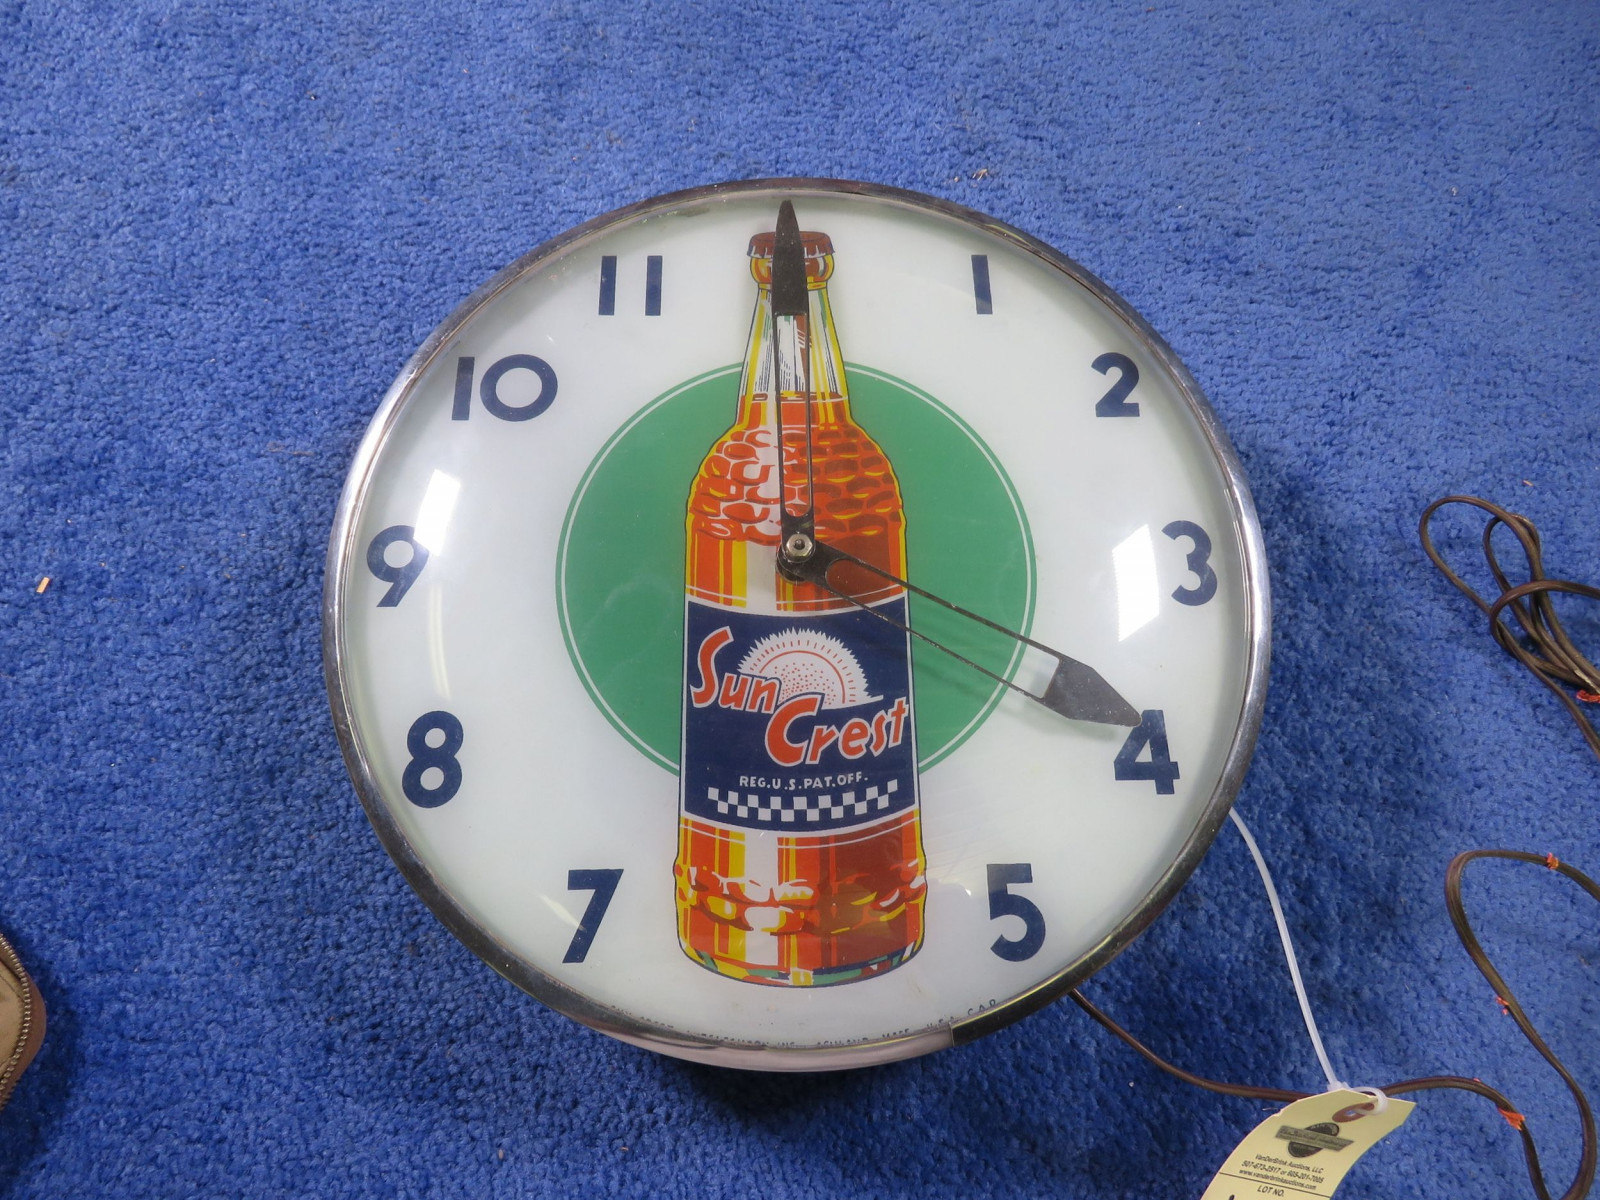 Vintage Suncrest Clock - Image 2